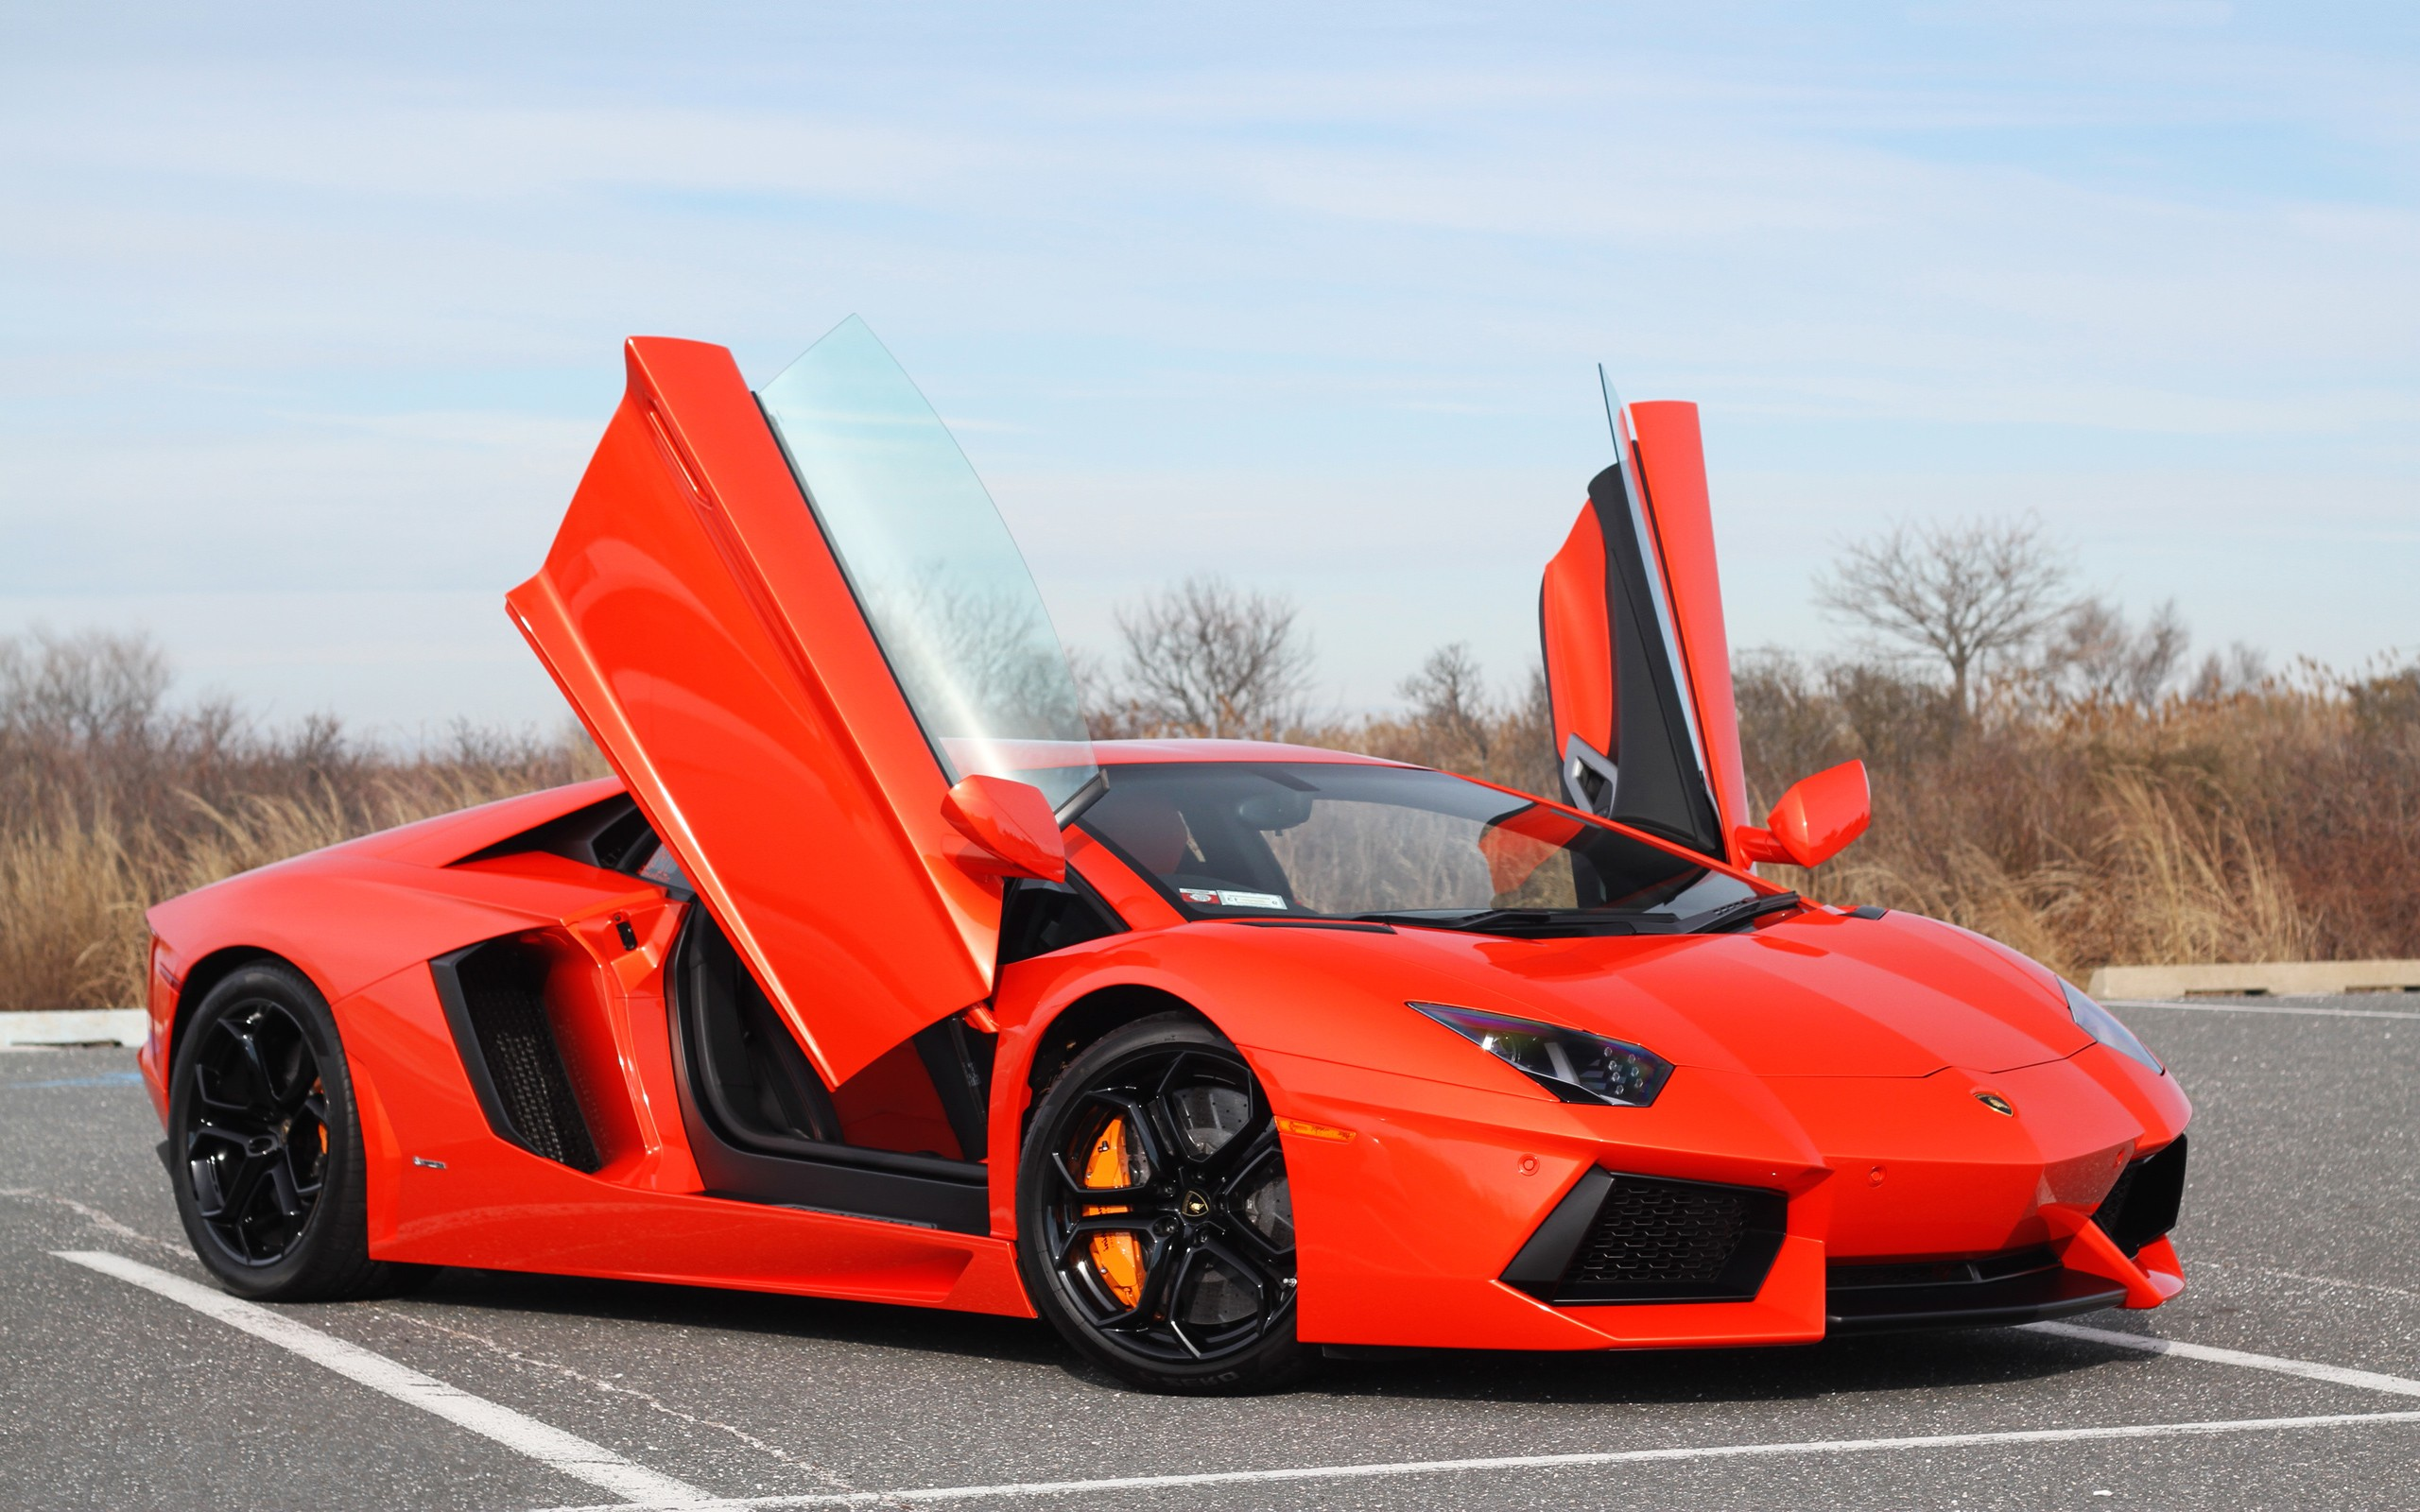 Hd Car Wallpapers High Resolution Cars Motor Sports